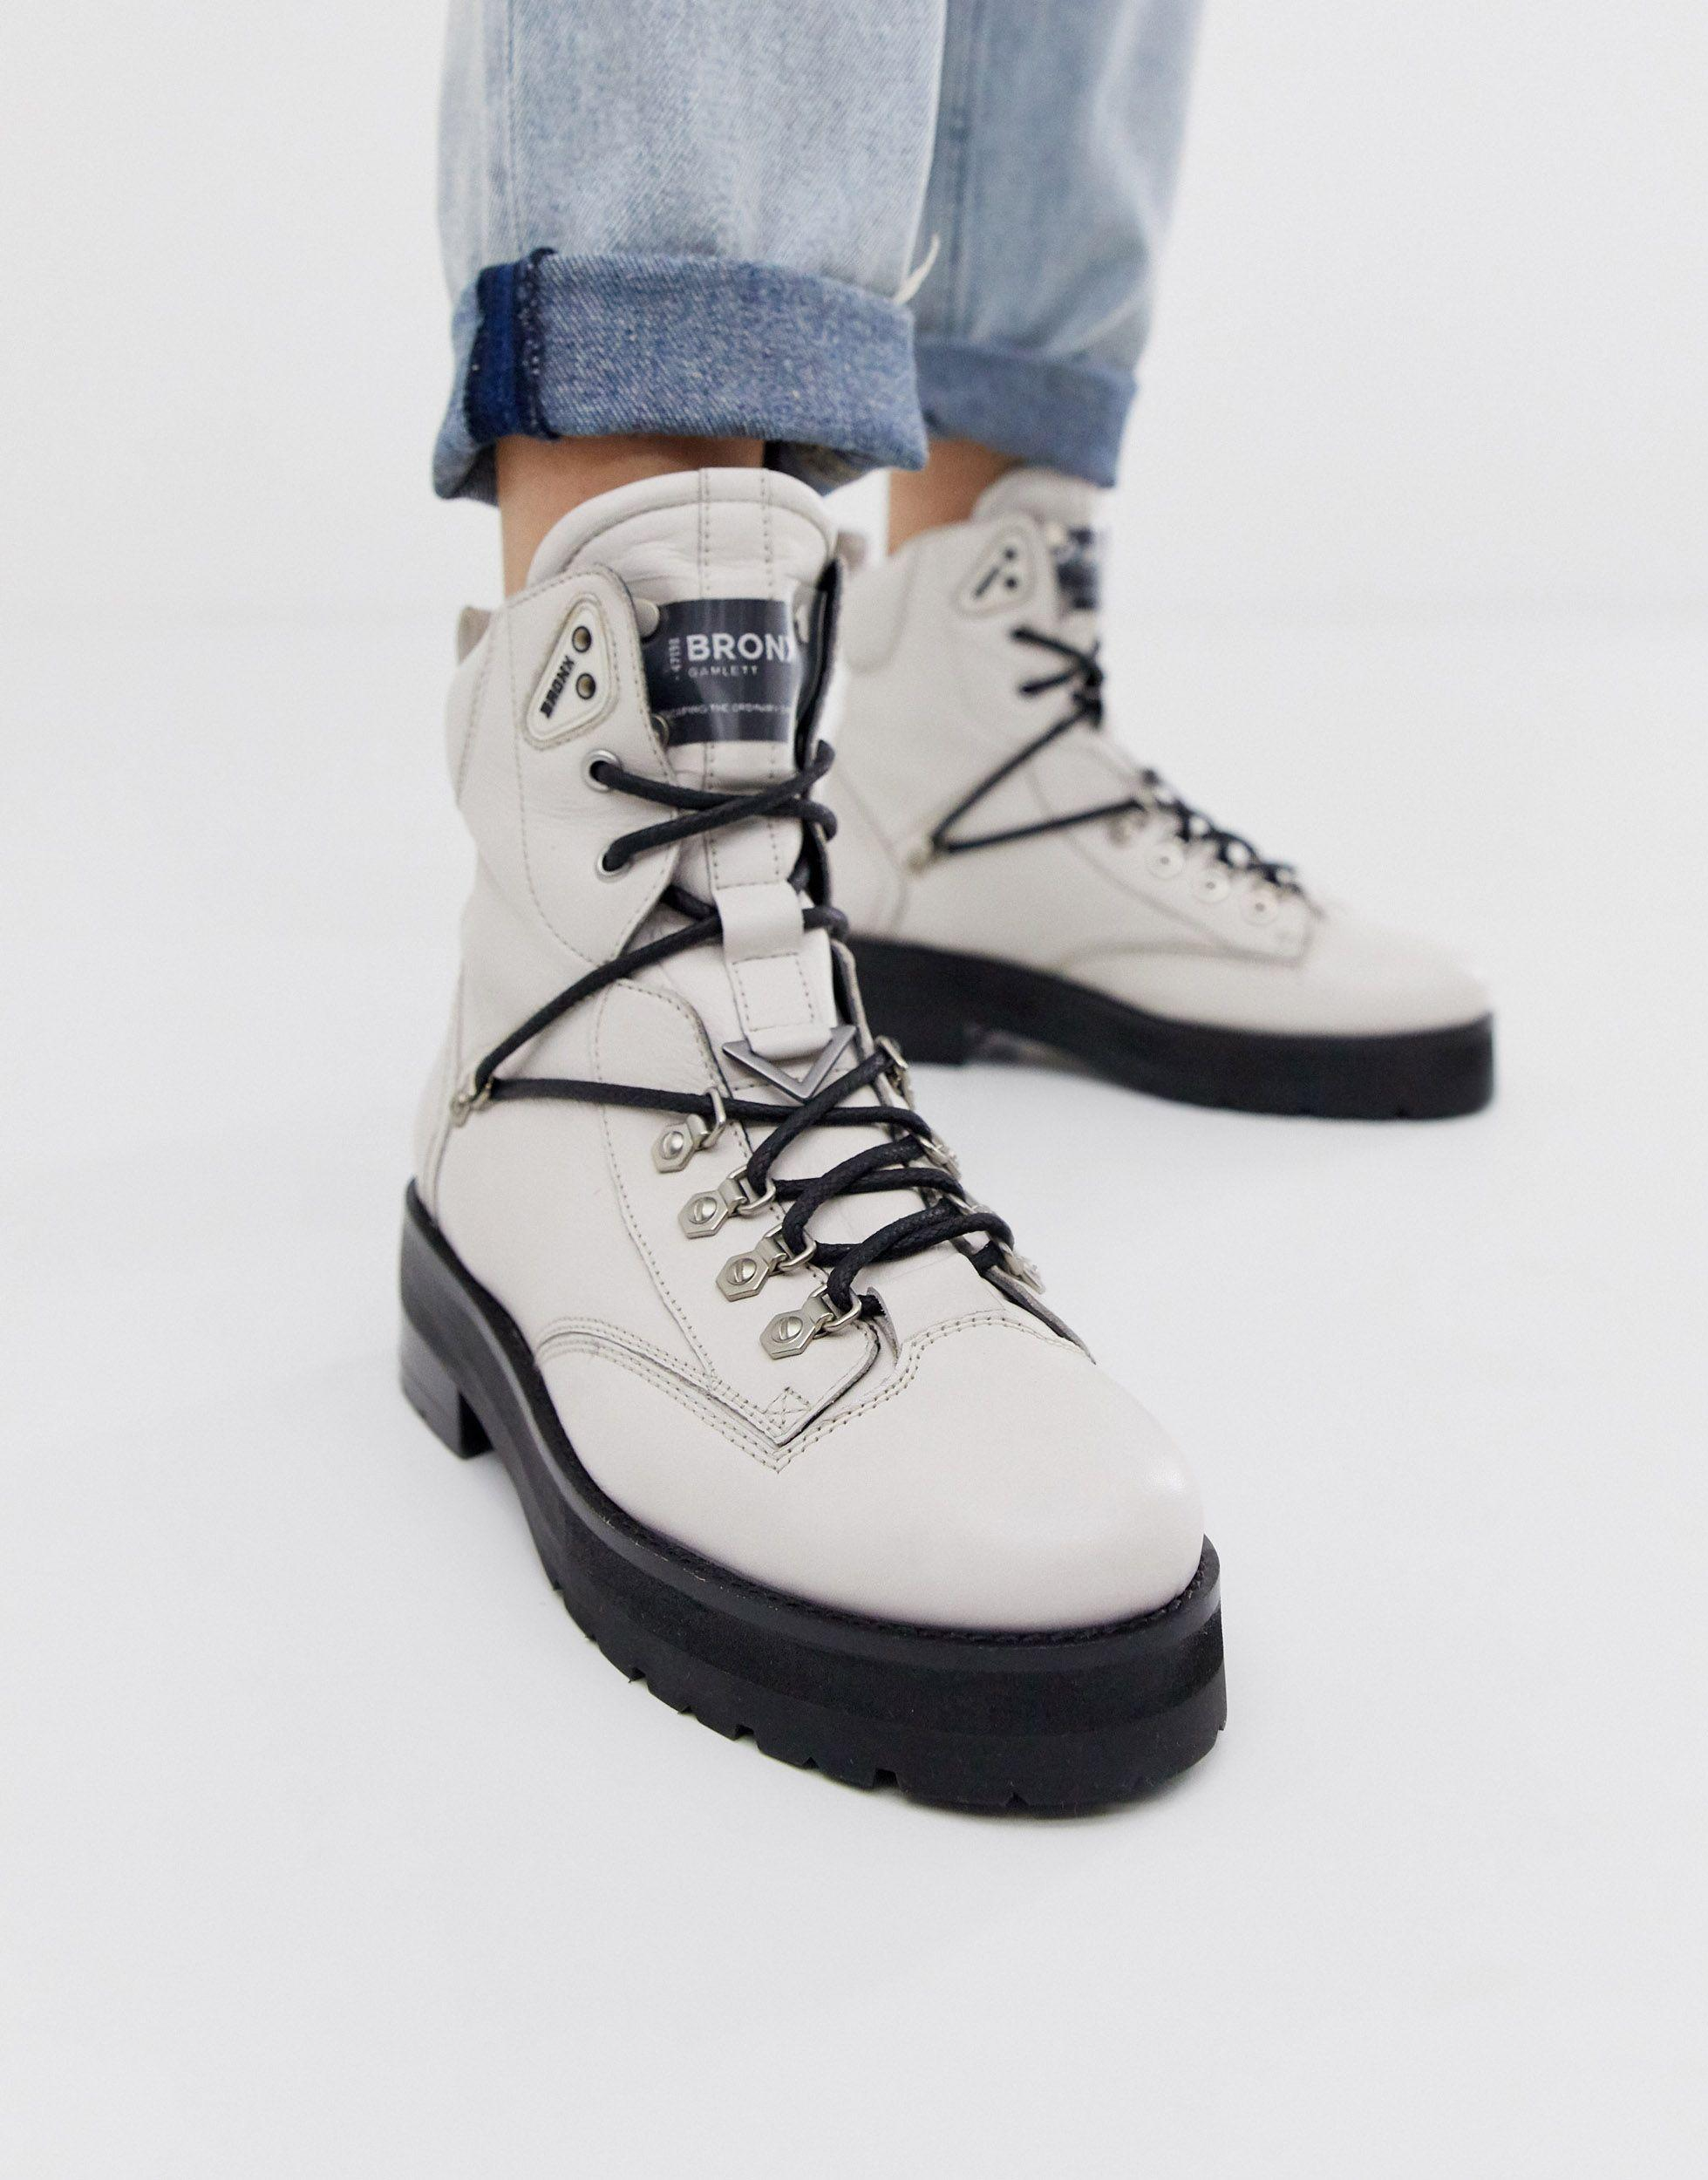 Bronx Off White Leather Hiker Boots - Lyst